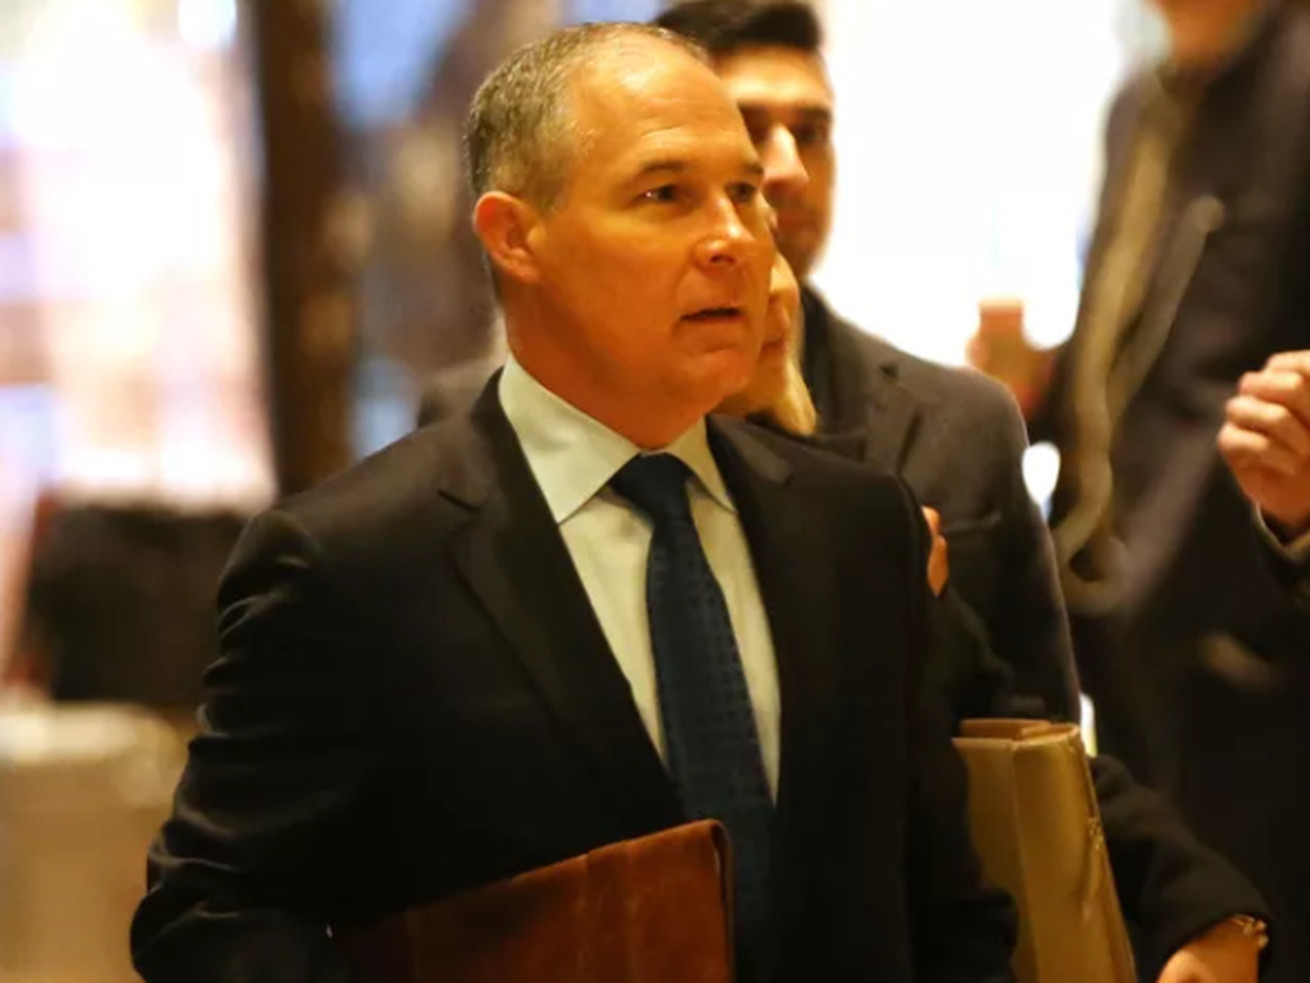 2.17.3.0-1 It took 3 hours for the EPA to tell staff they had a new boss